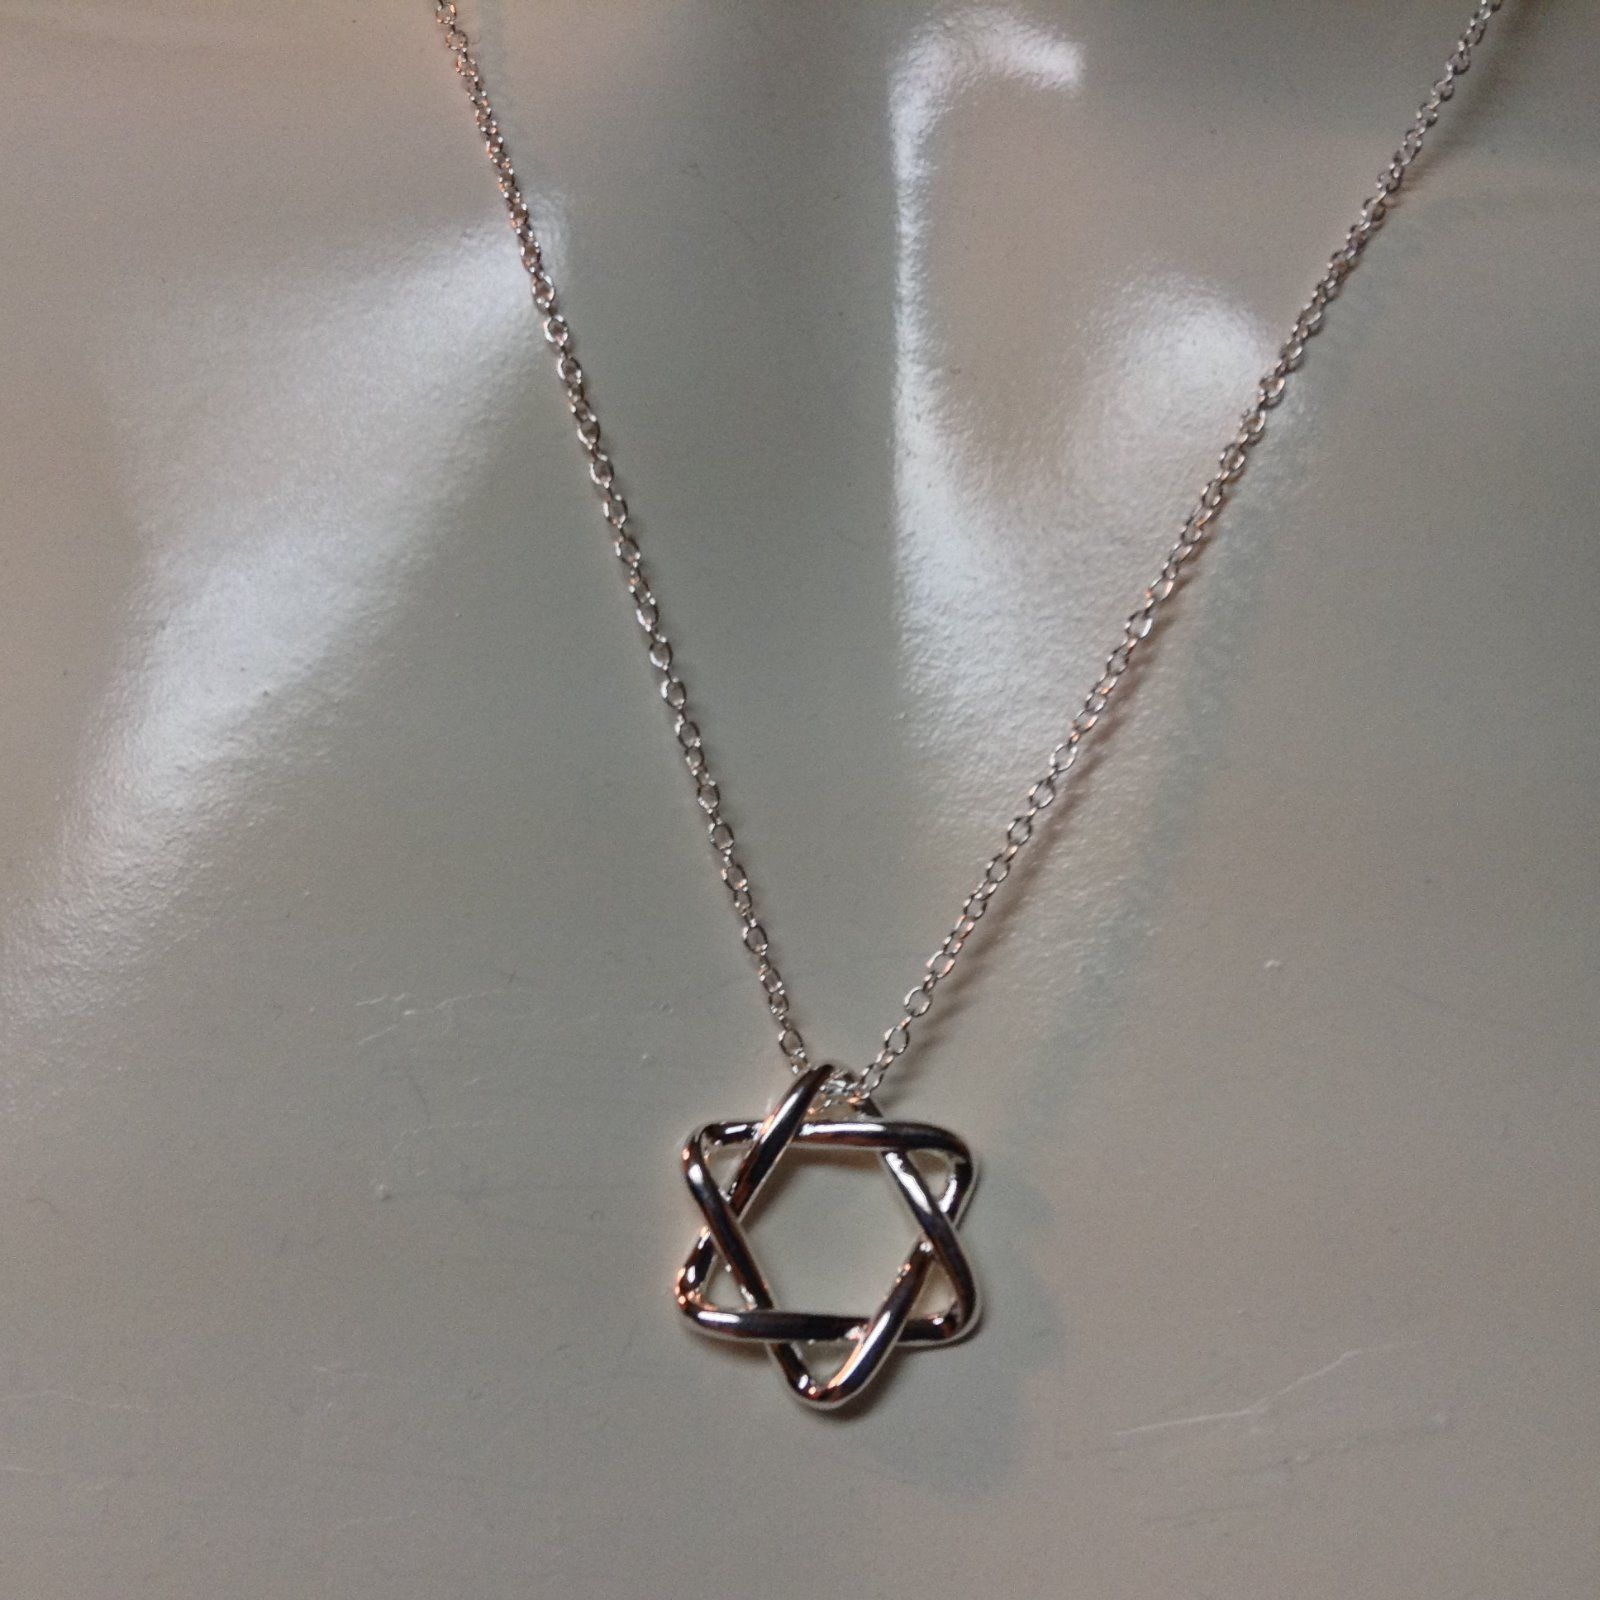 Star of David Sterling Silver Stamped 925 Necklace NWT